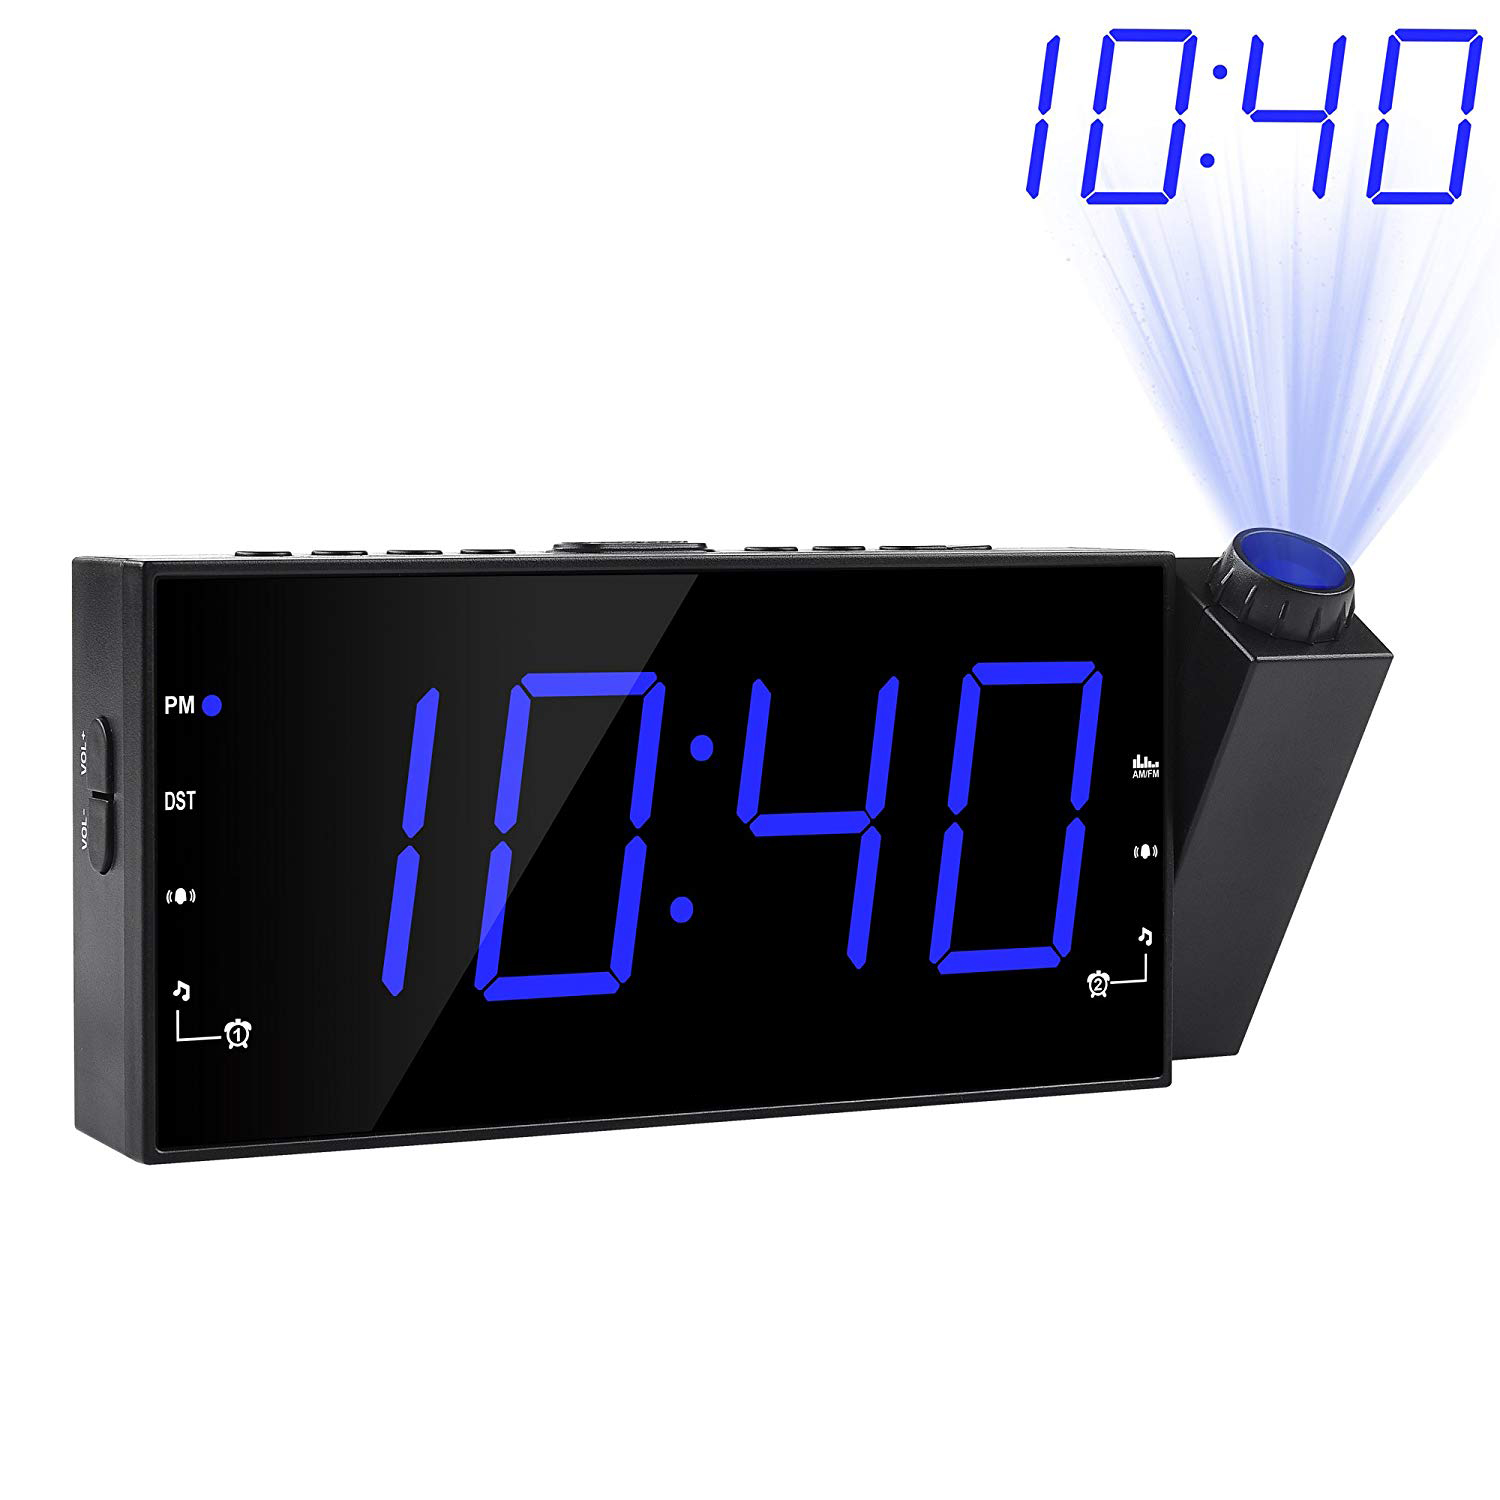 Creative personality bedside multi-funtion custom wall electronic projection bedside digital alarm clock